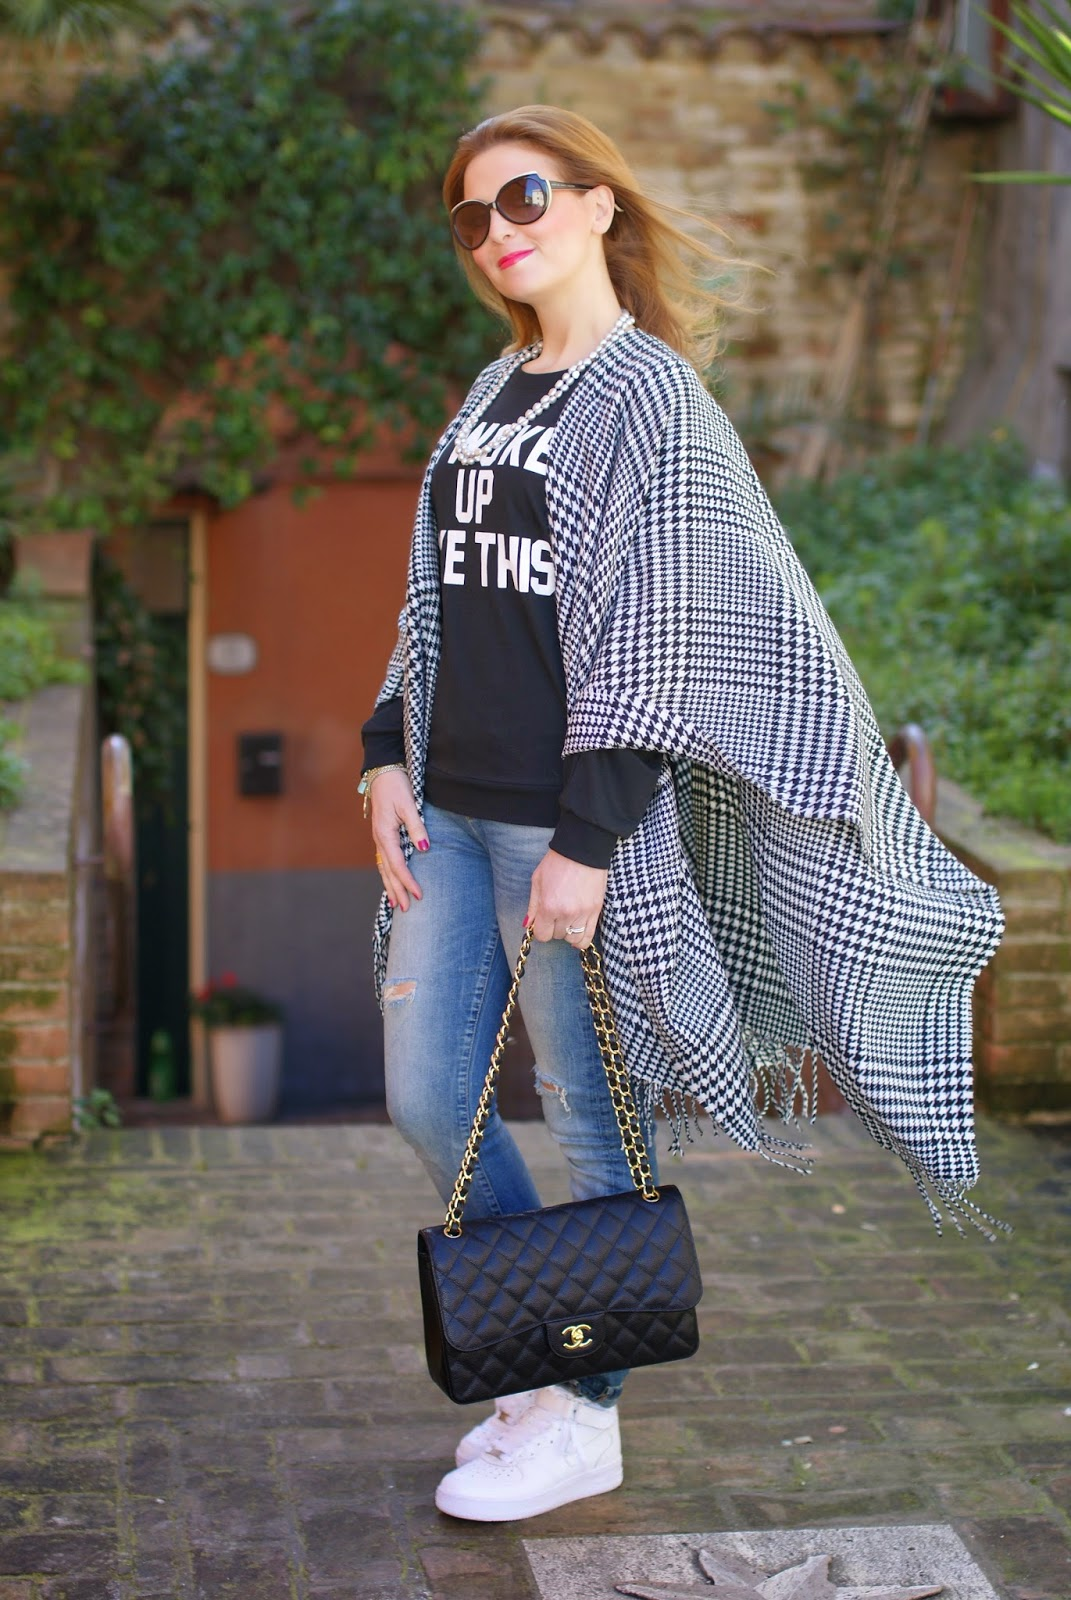 Blue Vanilla cape, I woke up like this, Romwe t-shirt, silver pearls necklace, Chanel 2,55 bag on Fashion and Cookies fashion blog